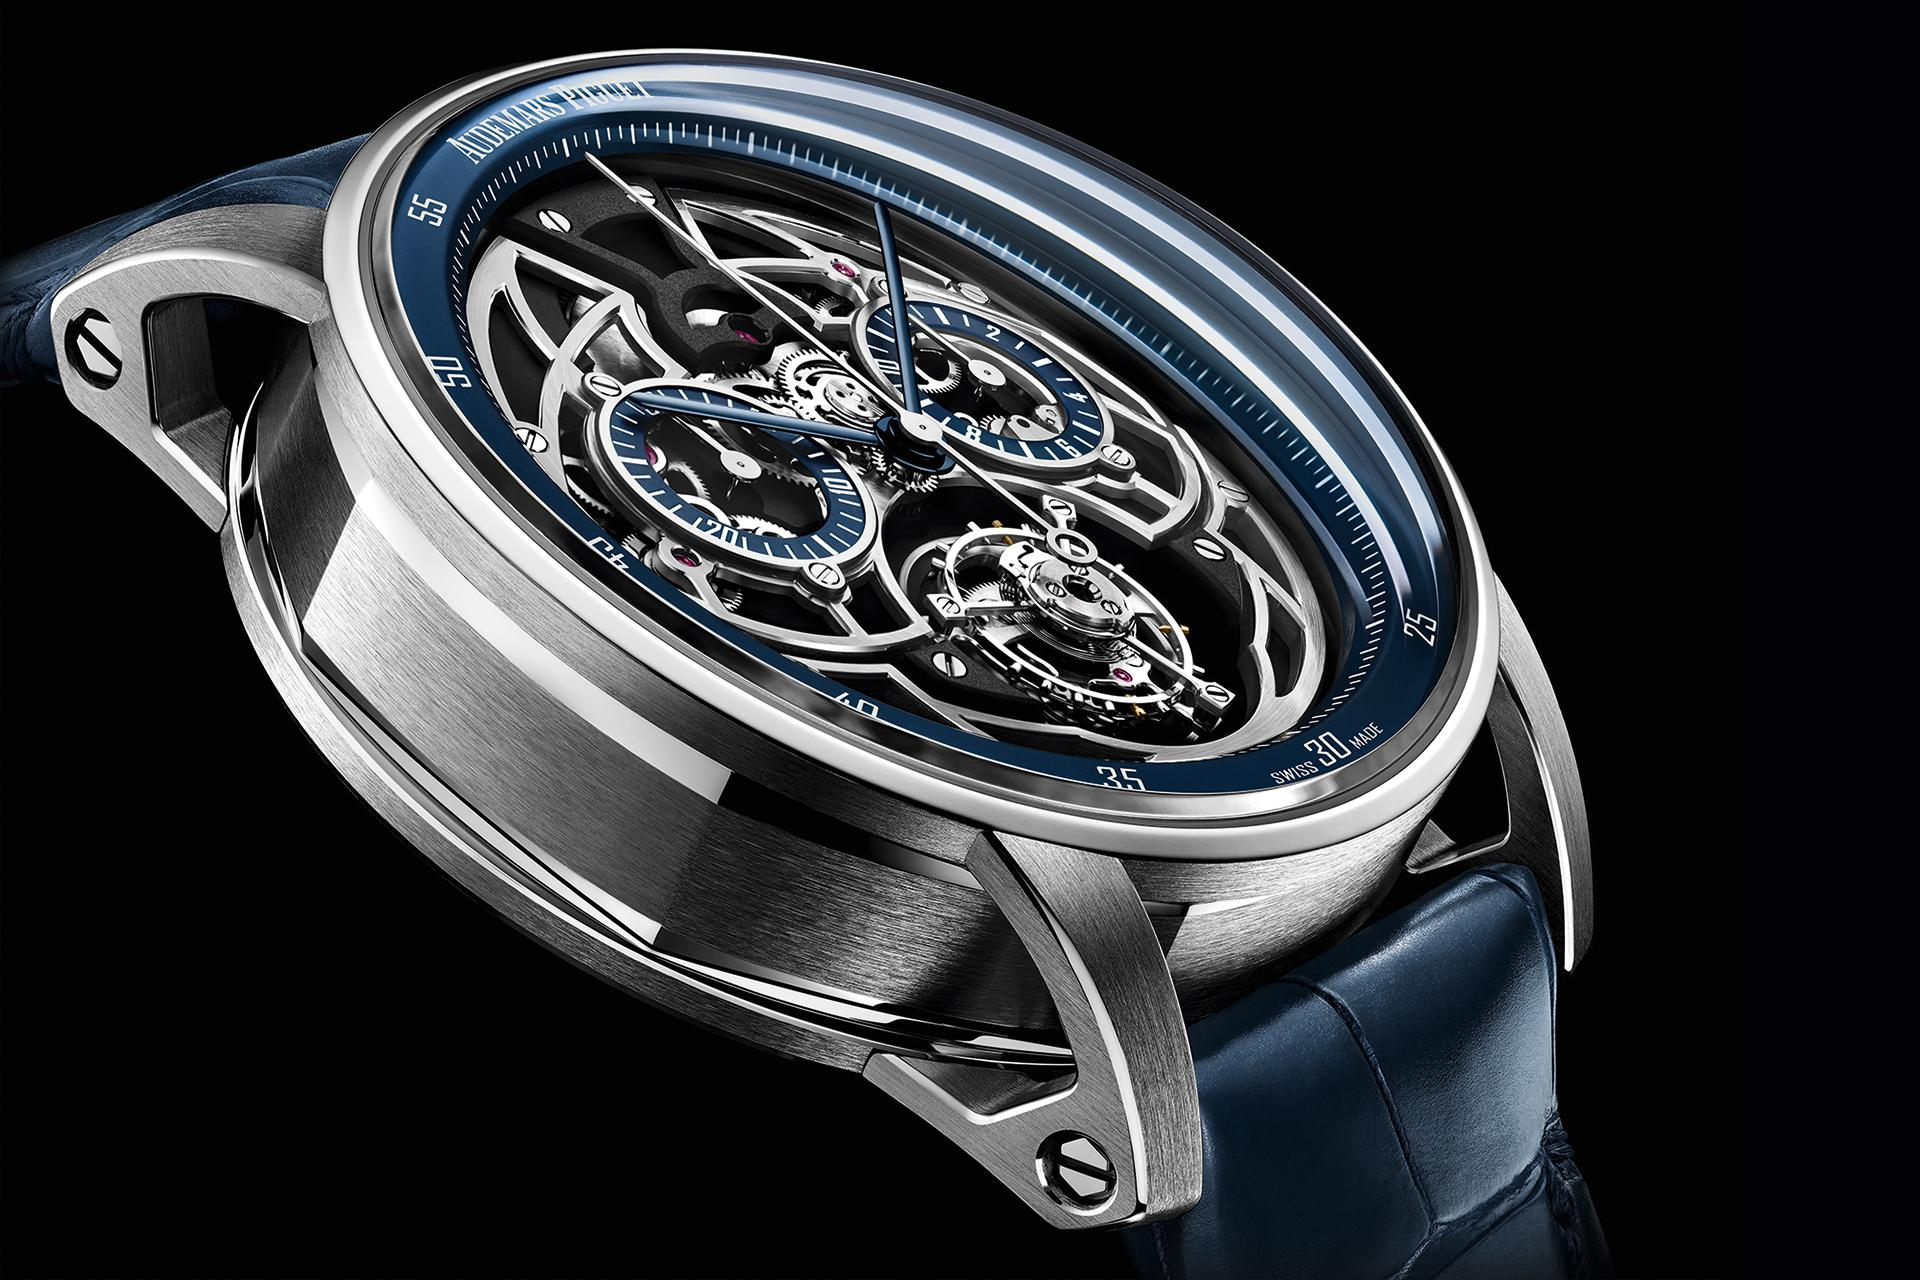 Code 11.59 Selfwinding Flying Tourbillon Chronograph